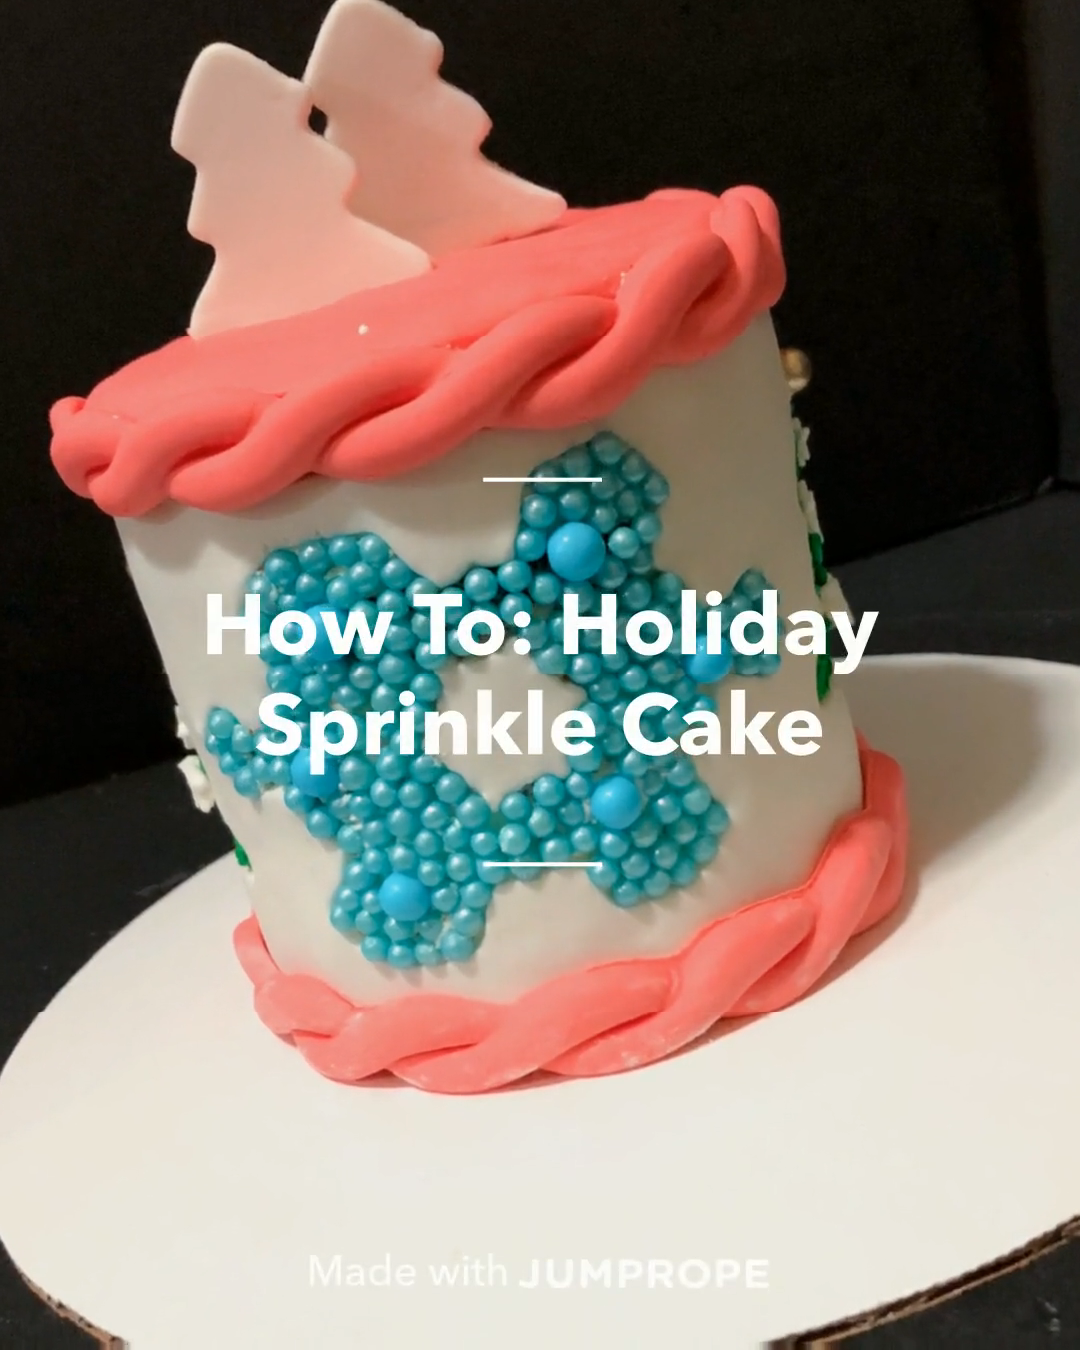 #jumpropecreators #madeonjumprope #jumpropeapp #jumprope #cake #cakedecoratingtechniques #quickbread #sprinkles #desserts #holiday #christmas #christmasvacation #christmasparty #diychristmas #chrismtastreats #christmasrecipes #christmassnacks